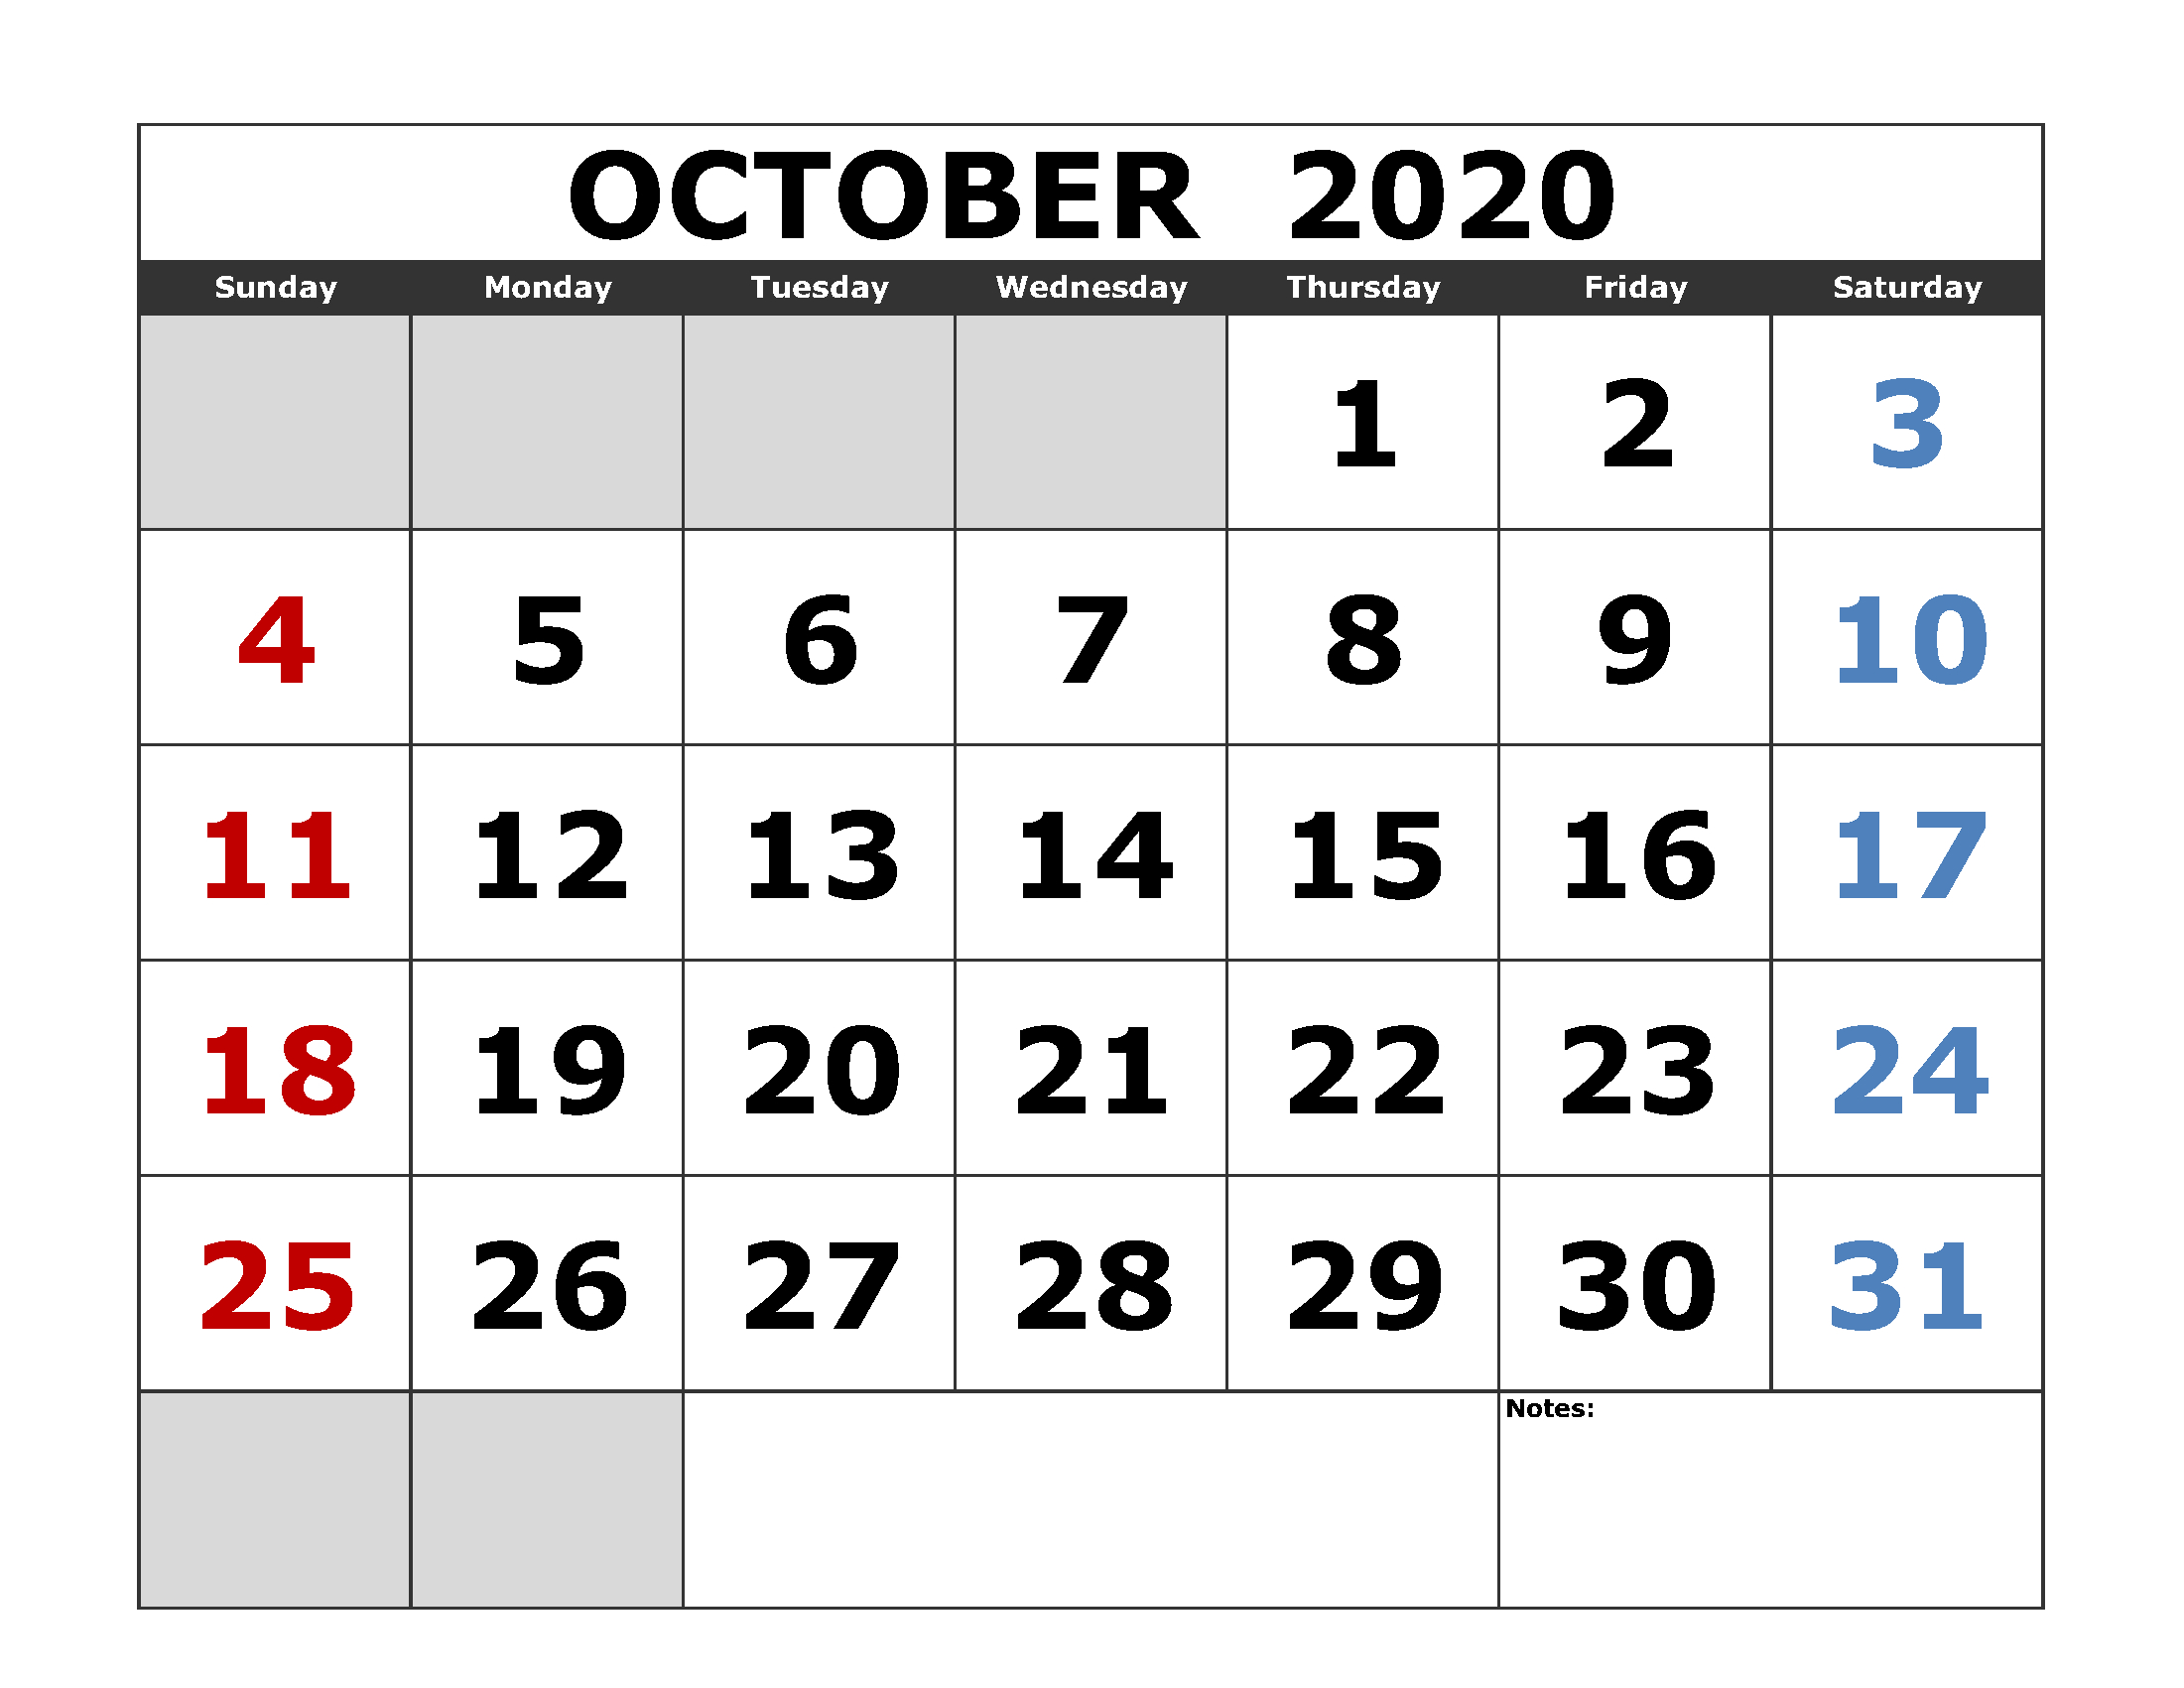 October 2020 Calendar Printable Tips You Will Read This Year